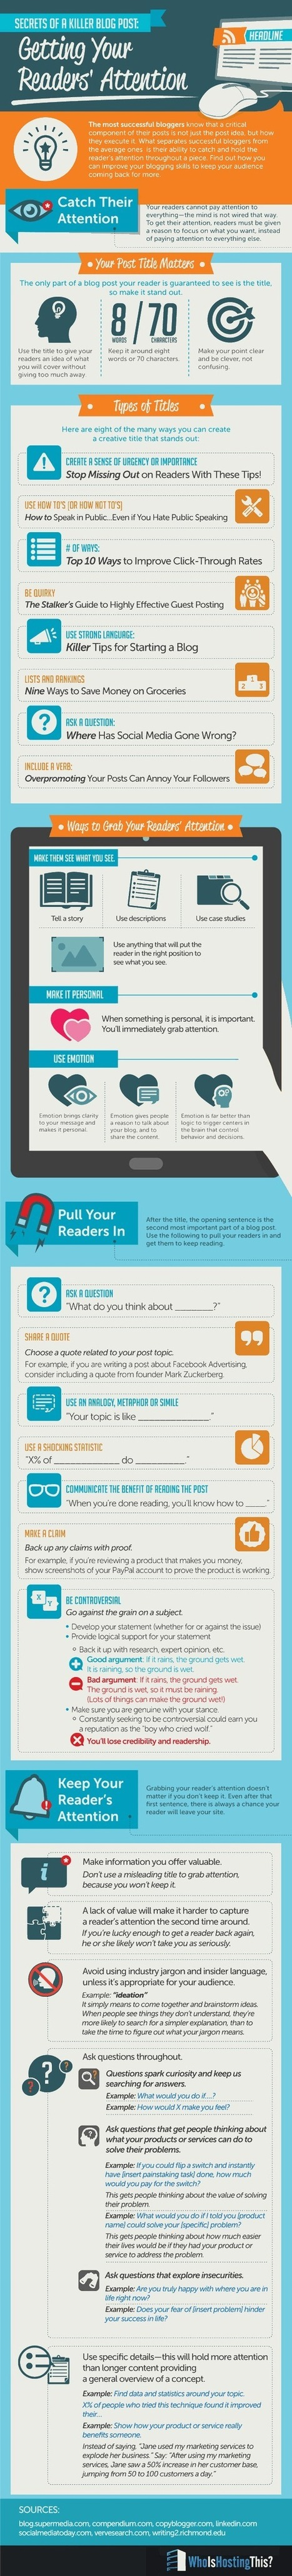 The Secrets to Writing an Attention-Grabbing Blog Post [Infographic] | visualizing social media | Scoop.it